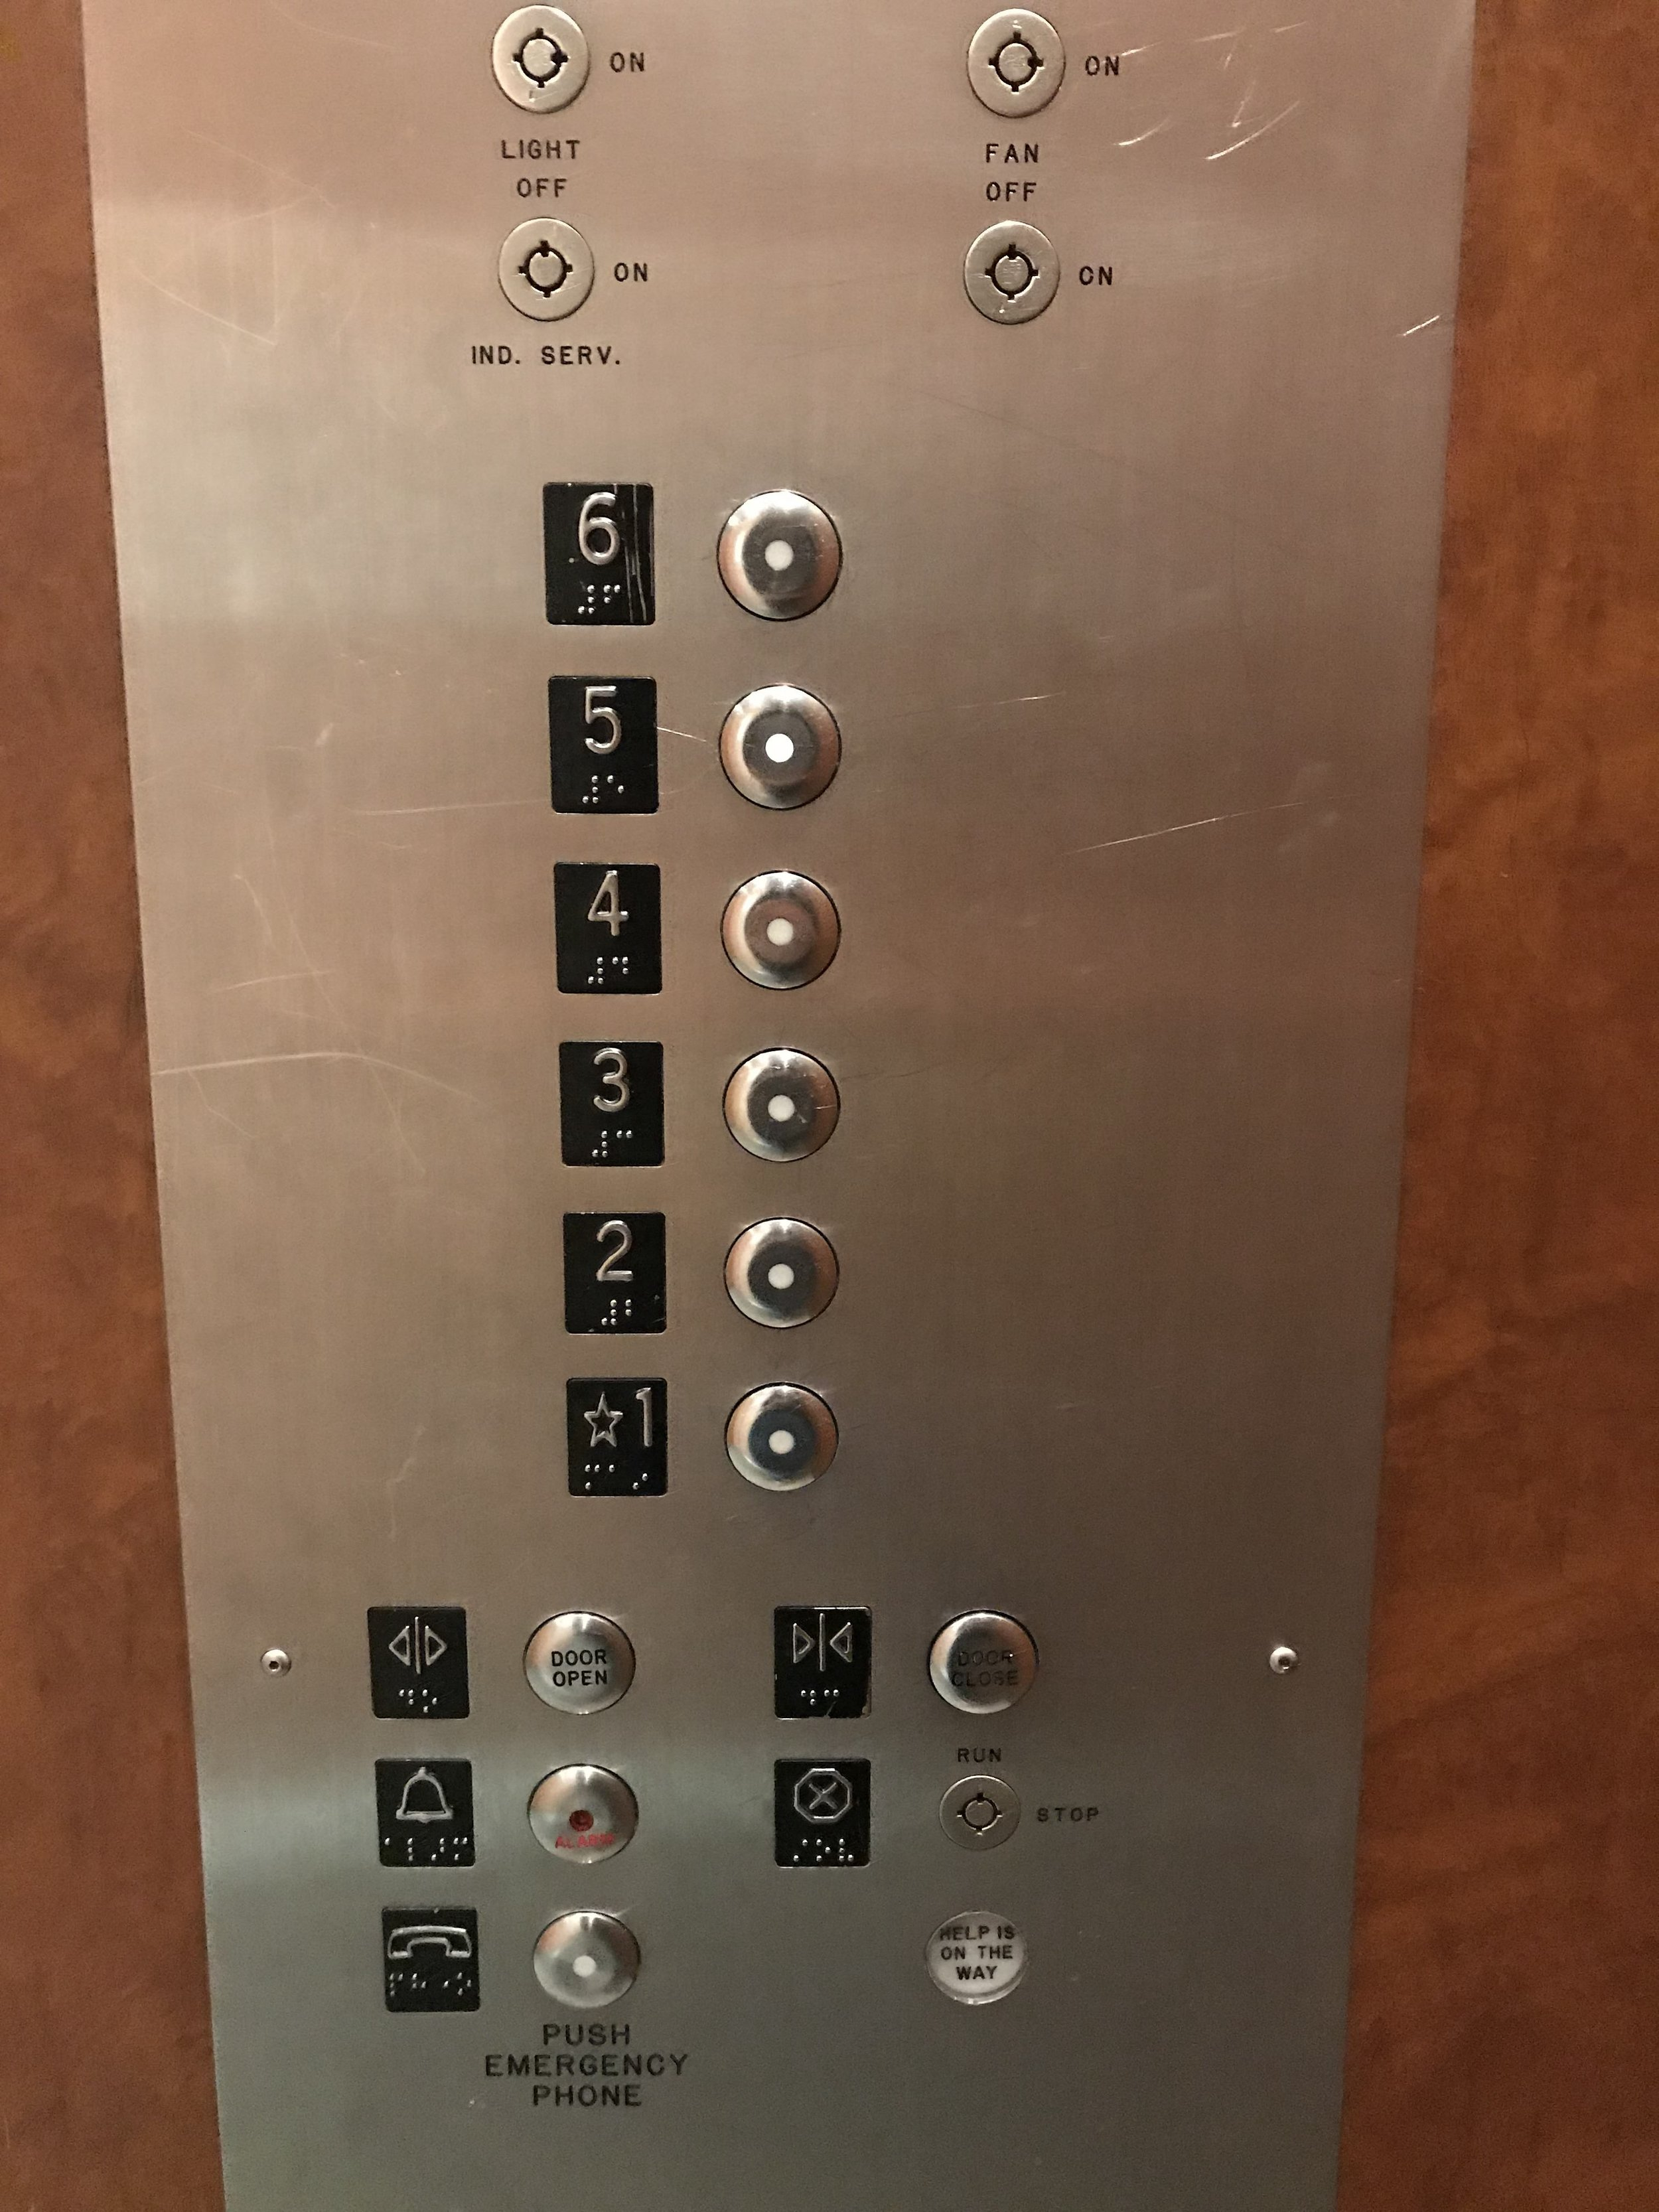 Image 1. This image is of the elevator at my apartment. I had pressed floor 4 and the picture has been taken while the elevator was still about to reach the fourth floor. Hence, as you can see, it is difficult to tell if the person has pressed floor 4 or not and whether the floor has arrived or not.